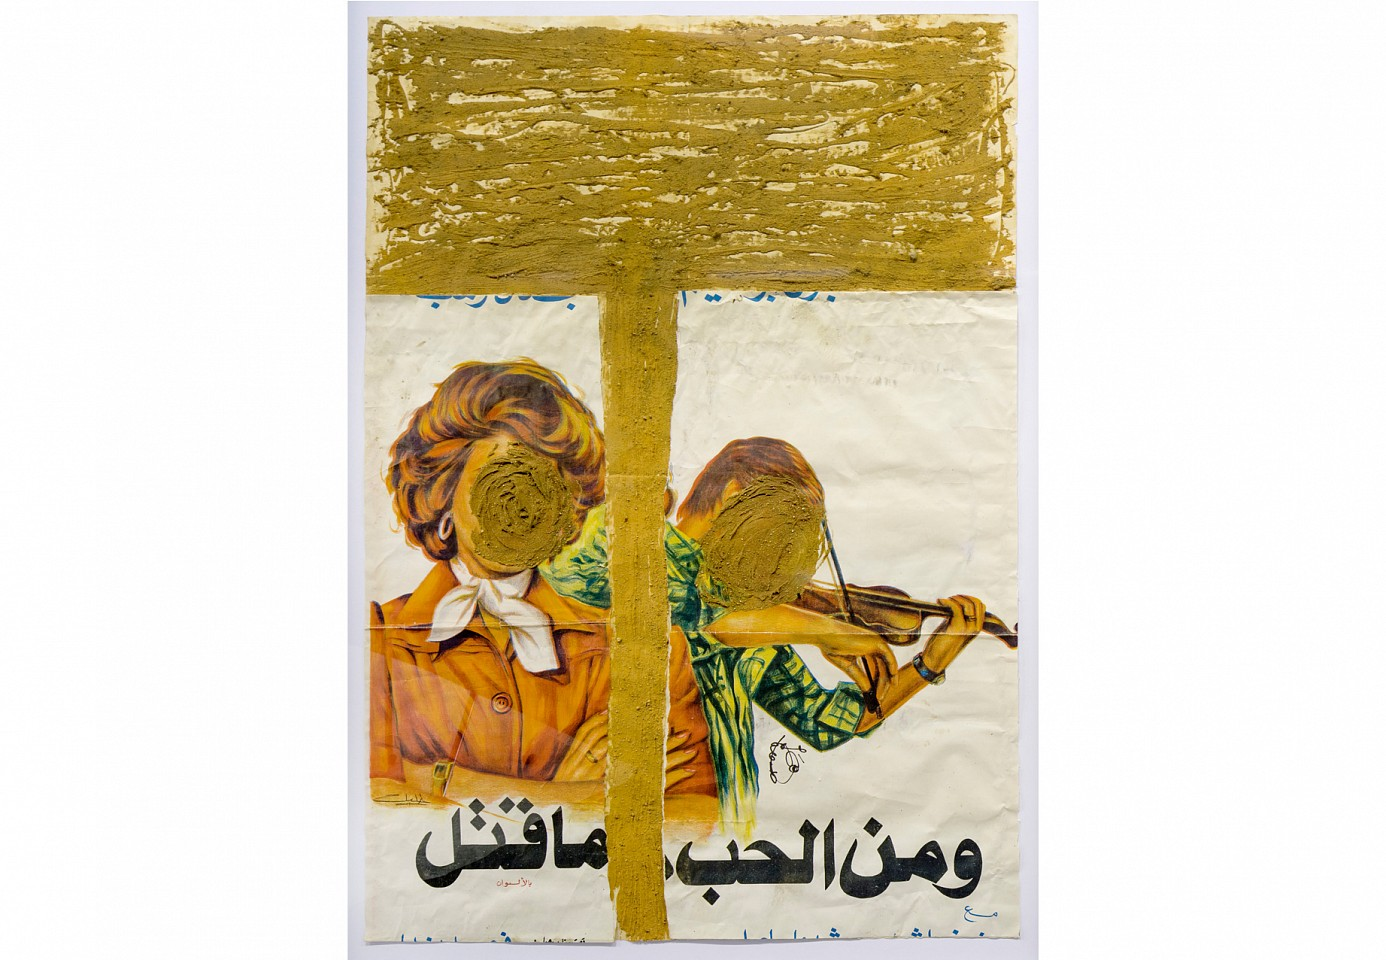 """<p><span class=""""viewer-caption-artist"""">Ayman Yossri Daydban</span></p> <p><span class=""""viewer-caption-title""""><i>Love Kills from My Father Over The Tree series</i></span>, <span class=""""viewer-caption-year"""">2016</span></p> <p><span class=""""viewer-caption-media"""">Silicone on vintage poster</span></p> <p><span class=""""viewer-caption-dimensions"""">100 x 70 cm (39 5/16 x 27 1/2 in.)</span></p> <p><span class=""""viewer-caption-inventory"""">AYD0575</span></p> <p><span class=""""viewer-caption-aux""""></span></p>"""